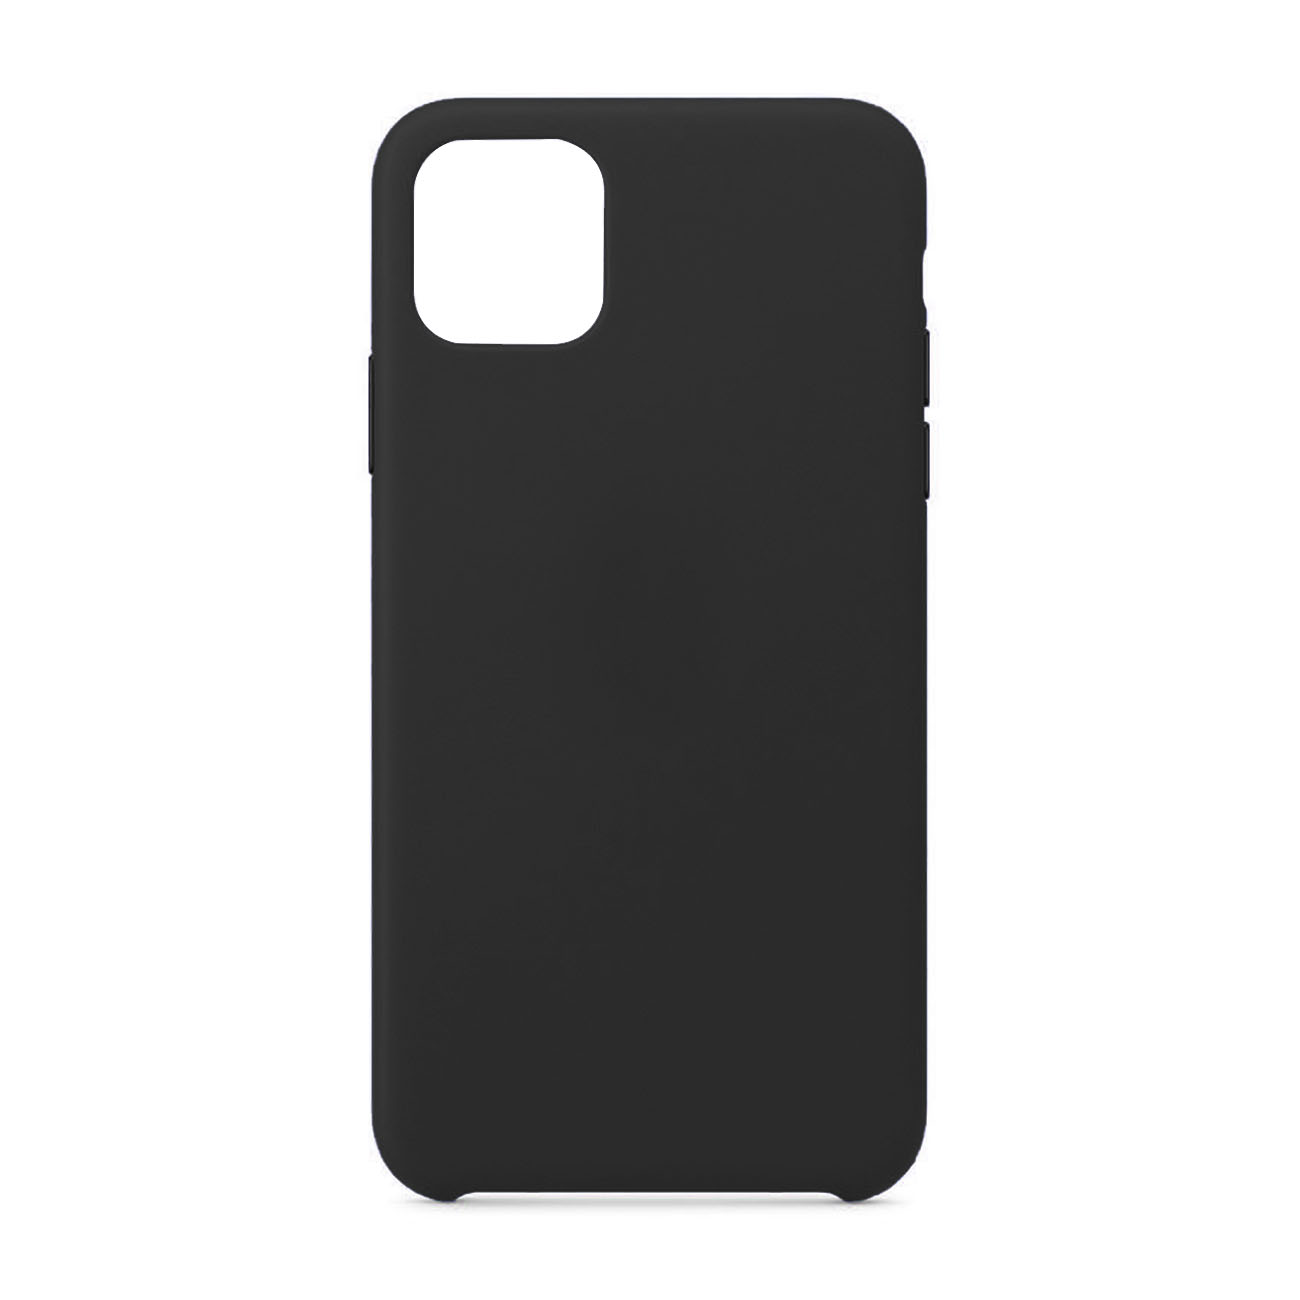 Reiko Apple iPhone 11 Gummy Cases In Black